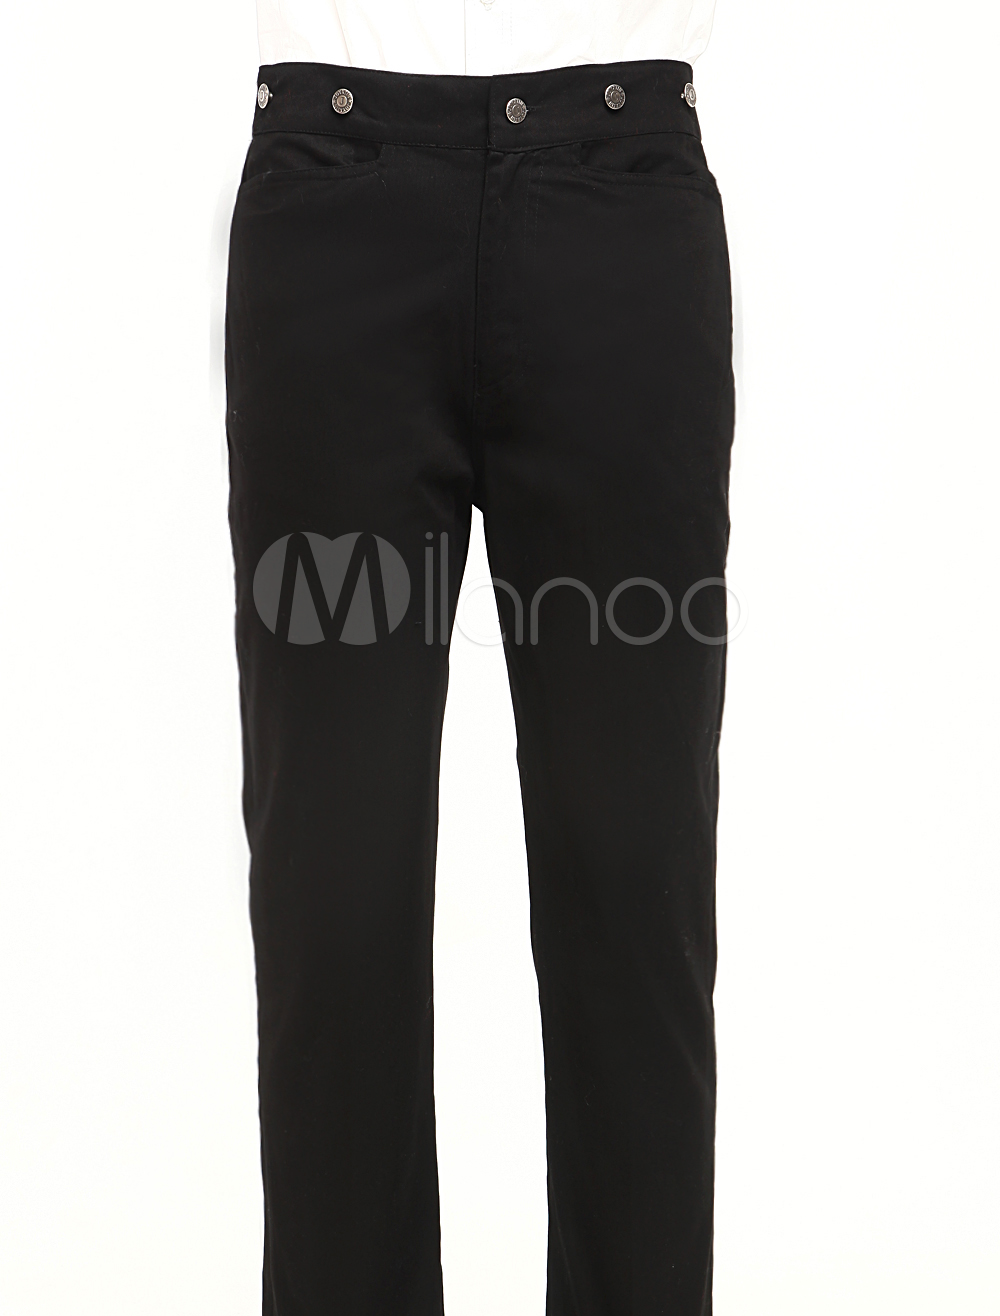 #Milanoo.com Ltd          #Steampunk  Trousers      #Classic #Black #Cotton #Mens #Steampunk #Trousers  Classic Black Cotton Mens Steampunk Trousers                                  http://www.seapai.com/product.aspx?PID=5717999